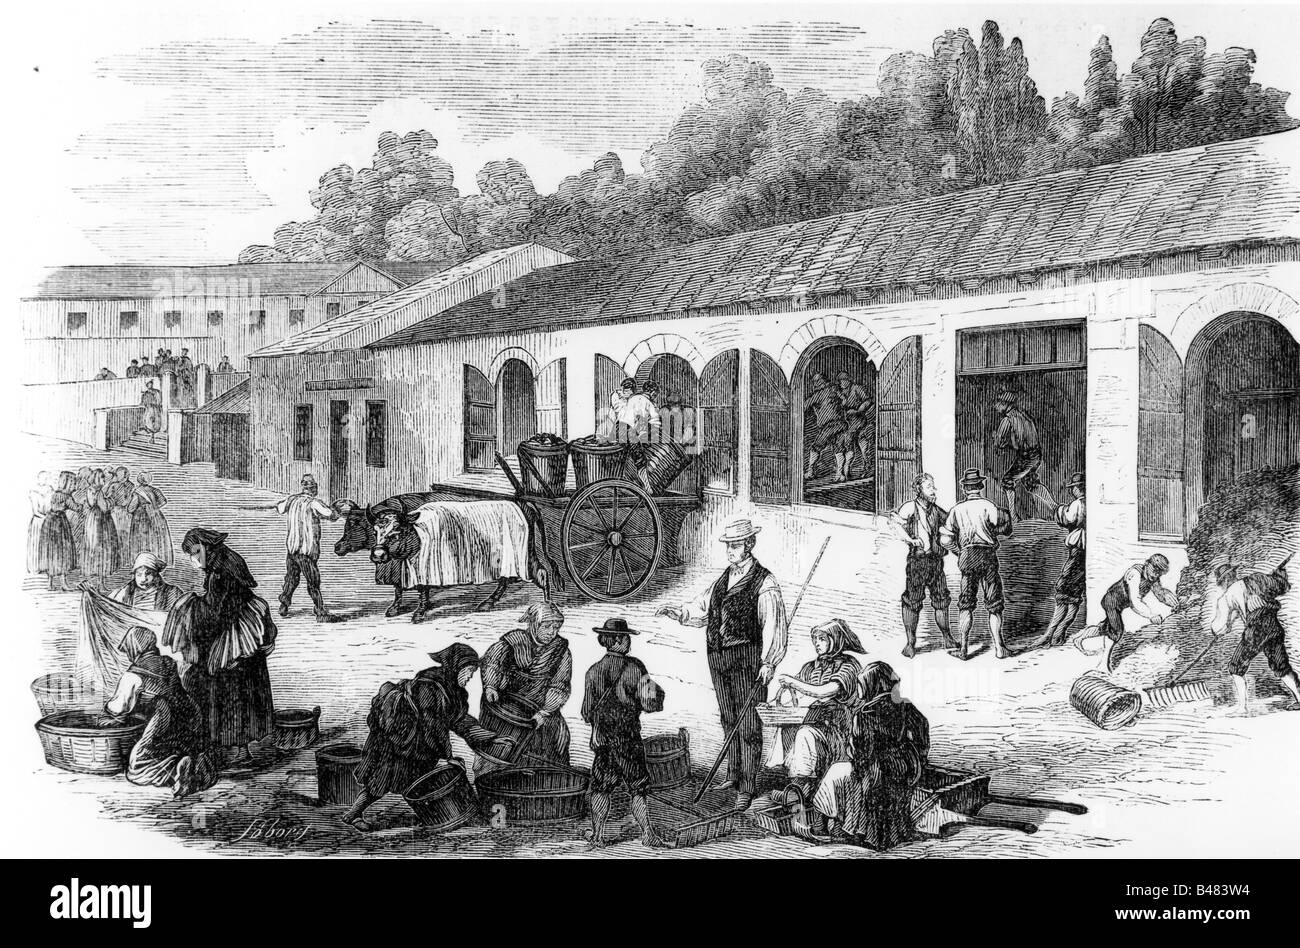 alcohol, sparkling wine, production, plant for blending young wines, winery Chateau Lafitte, France, wood engraving, - Stock Image